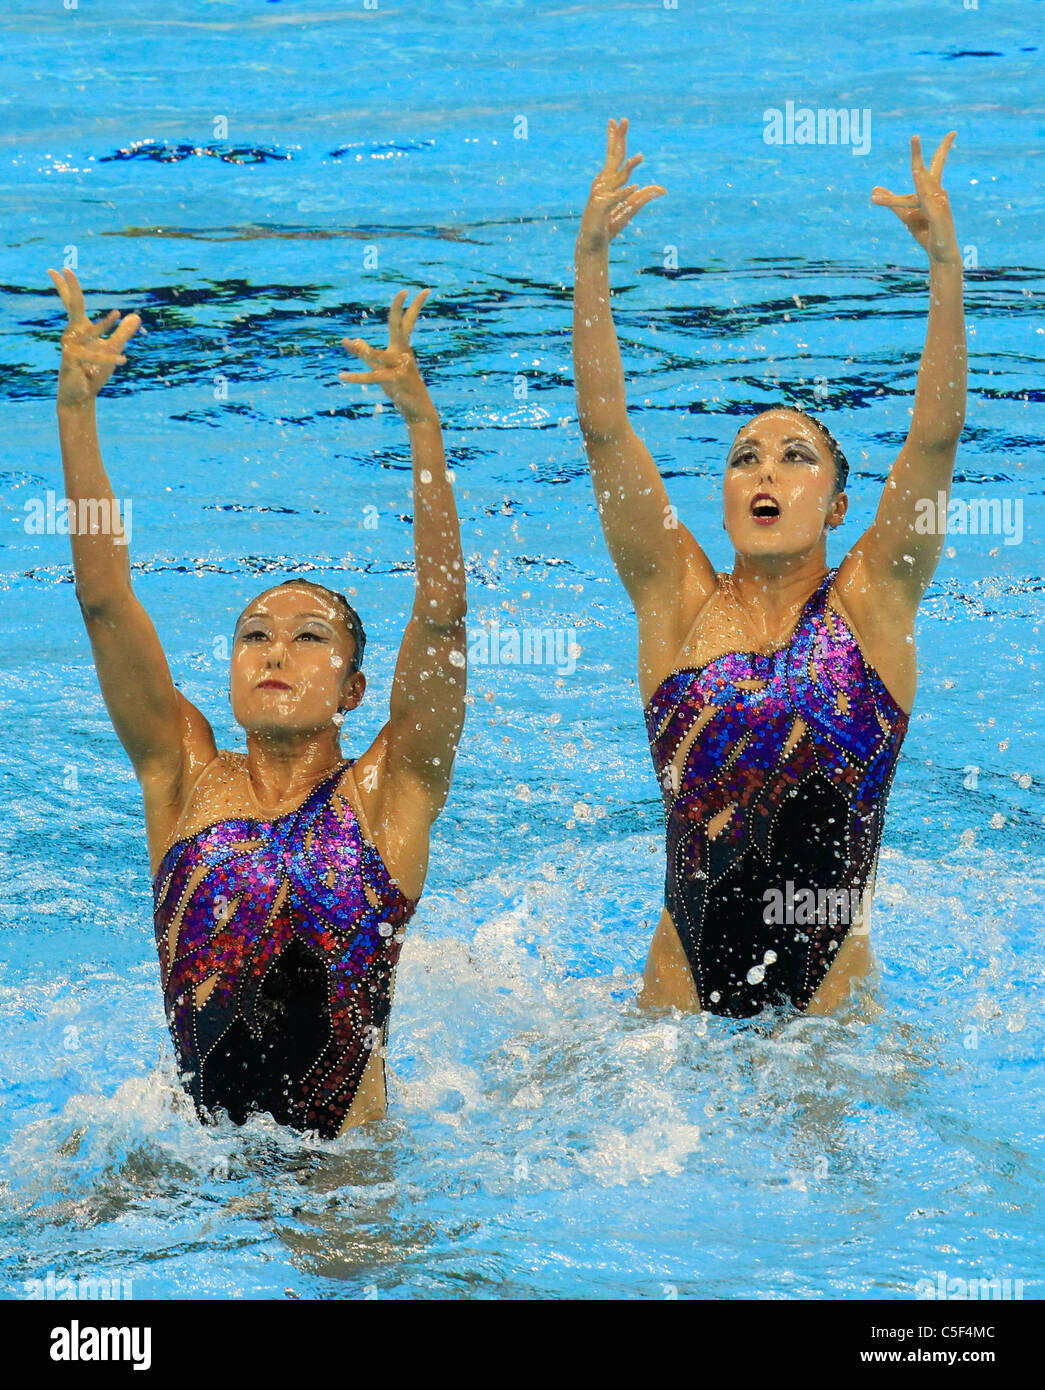 Yukiko Inui and Chisa Kobayashi (JPN) perform their routine in the synchronised swimming Technical Duets final. - Stock Image